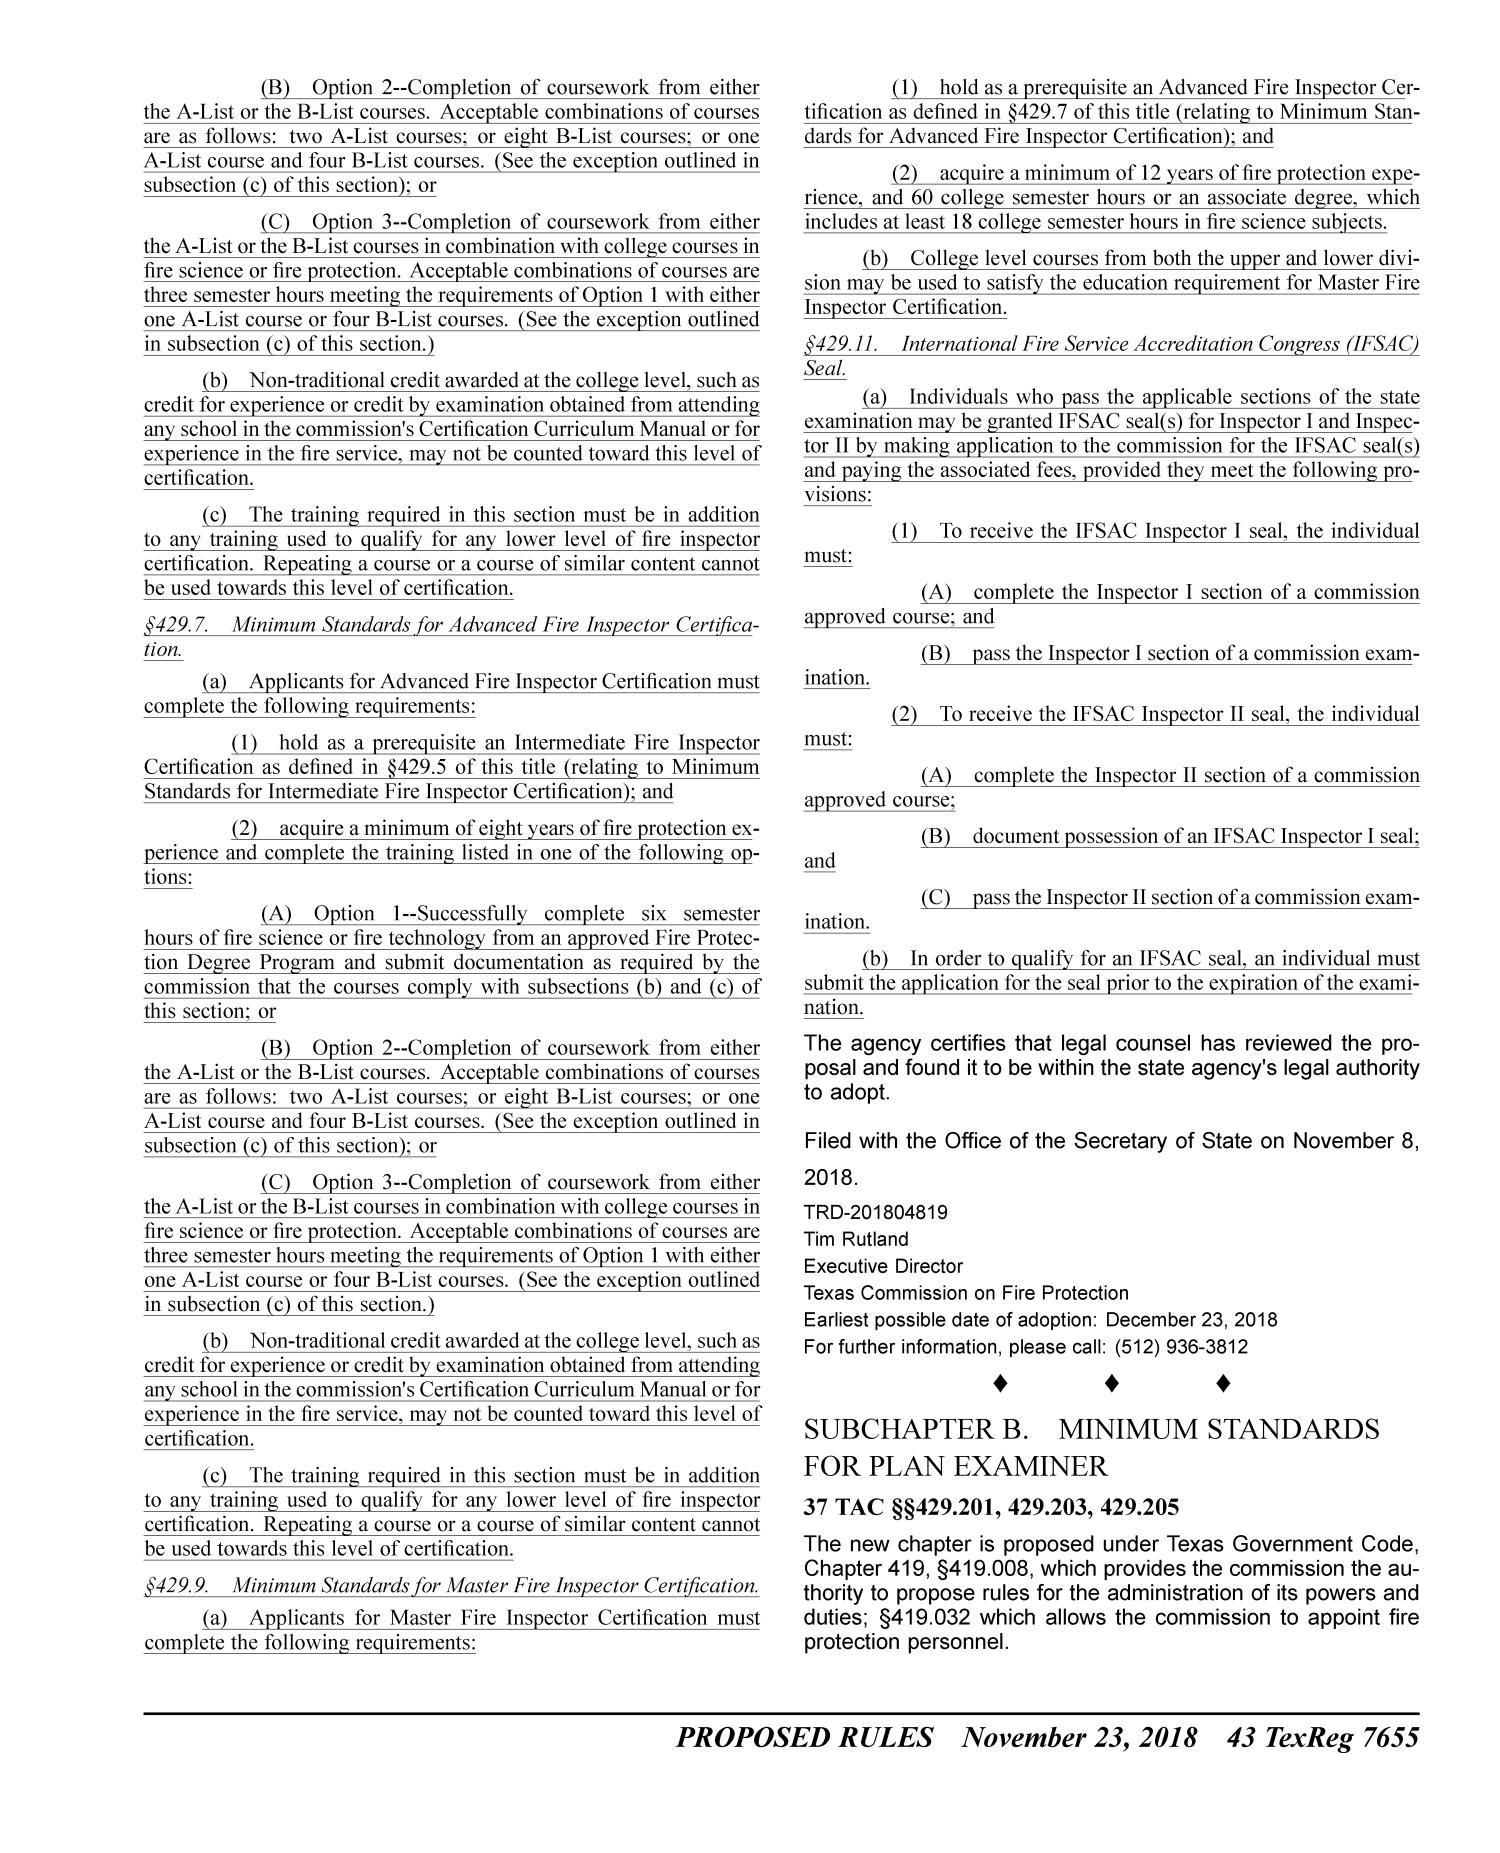 Texas Register, Volume 43, Number 47, Pages 7599-7742